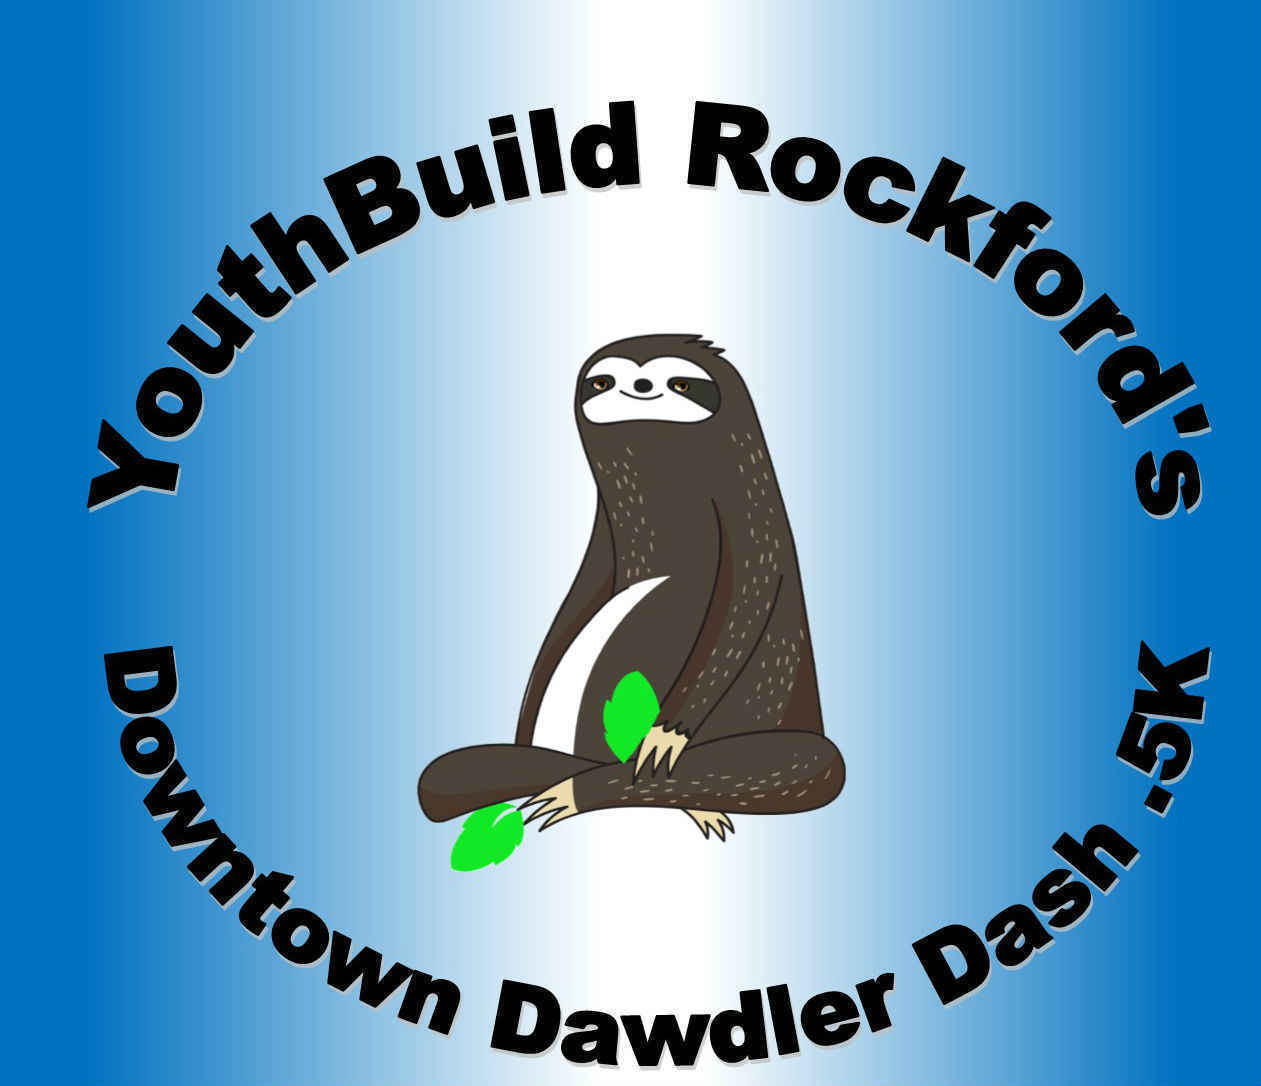 Downtown Dawdler Dash image